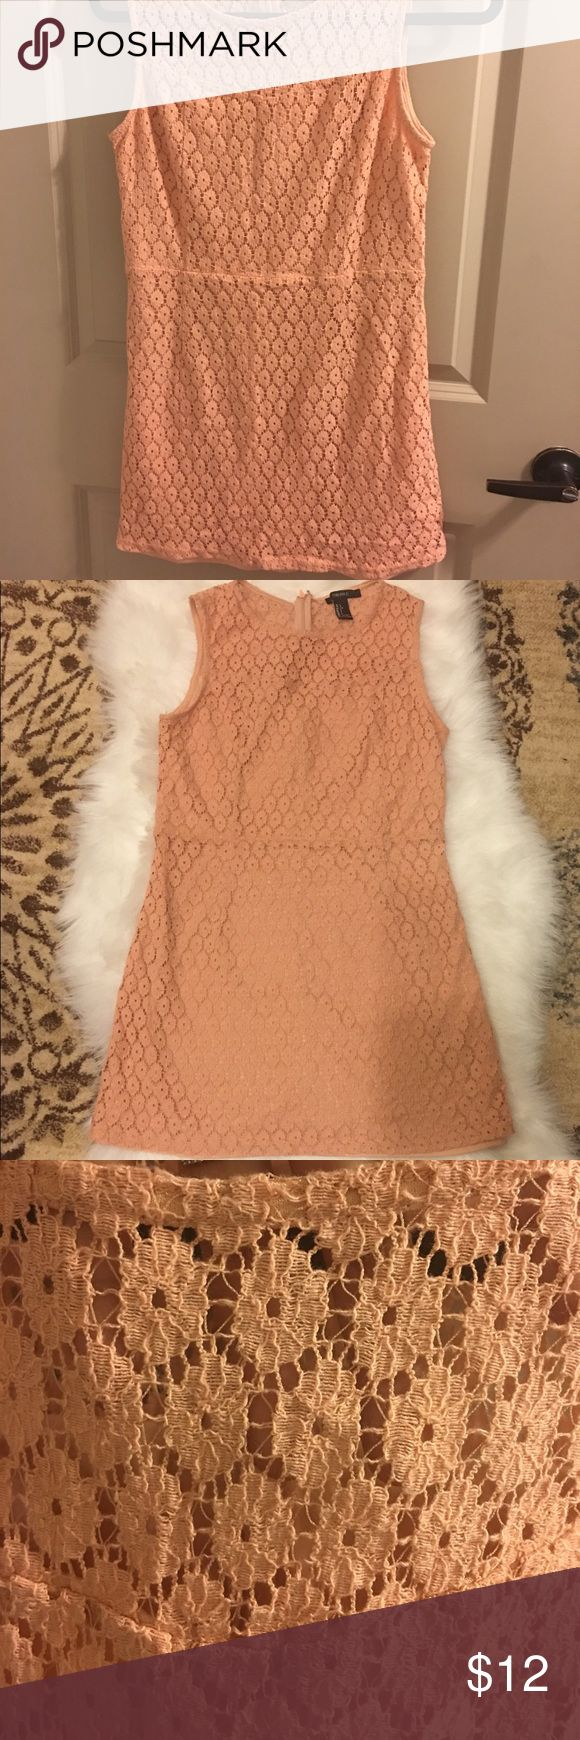 Forever 21 ~~~ 🍑 Peach Lace Dress (L) Pre-owned. An item that has been used or worn previously.  Impeccable and next to new :) { Smoke  / Pat free Home }  Length :29 Inch. measurement : Included in the pictures (Run small ) 🚫Stretchy Material  ⚡️Fast shipping ! 🧐 No trade ! Forever 21 Dresses Mini